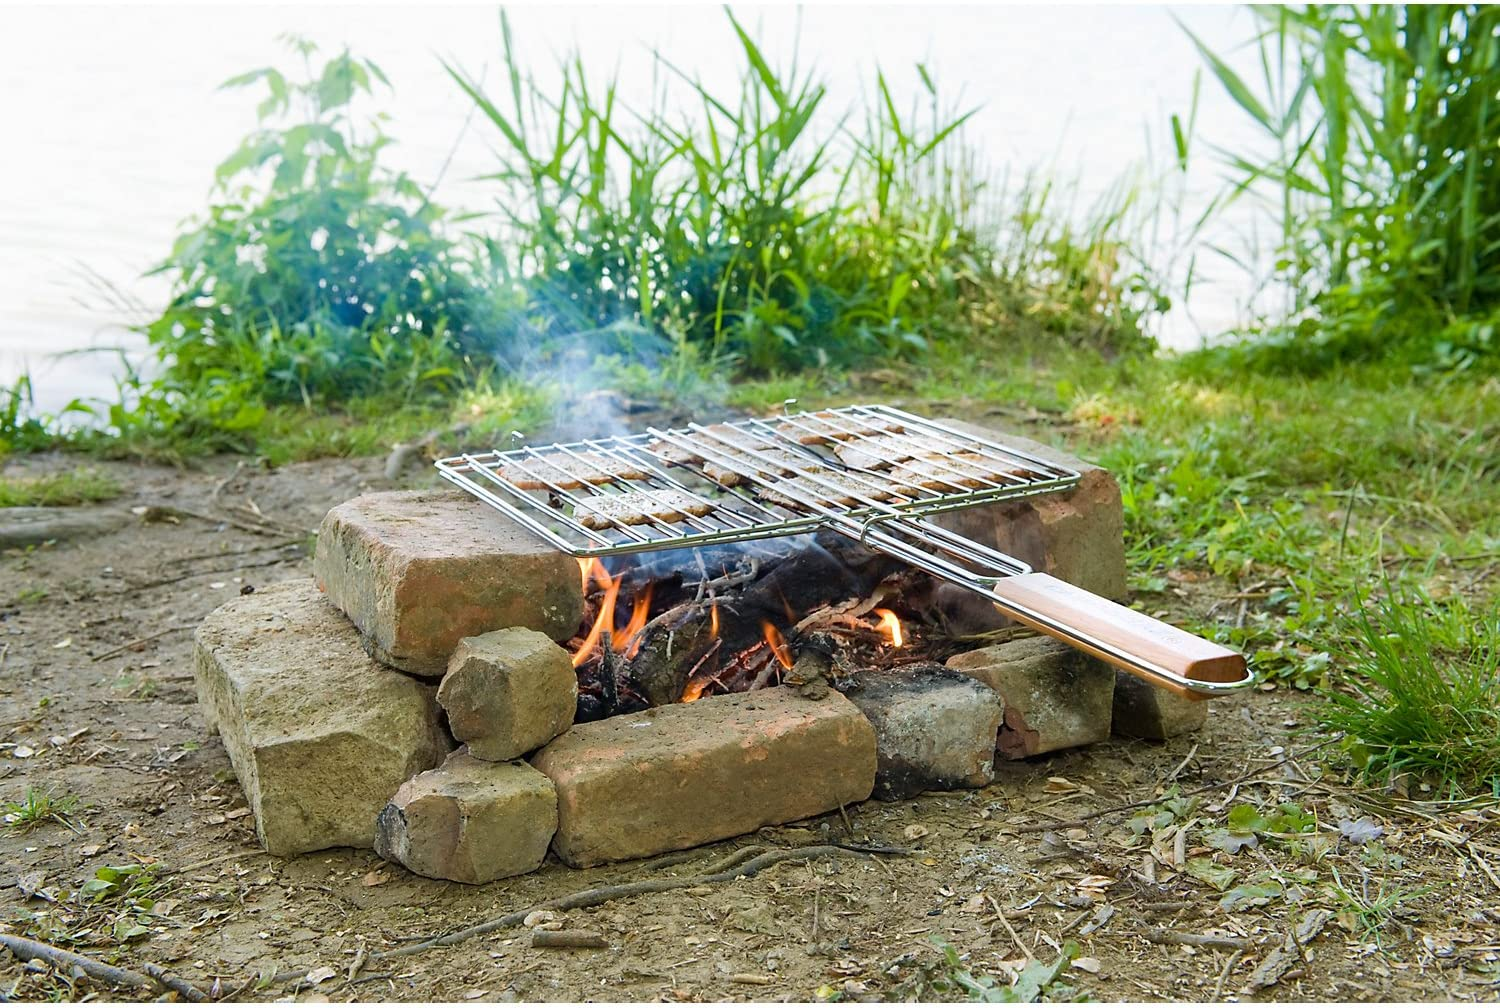 Grille barbecue rectangulaire double 48x27.5 cm Campingaz